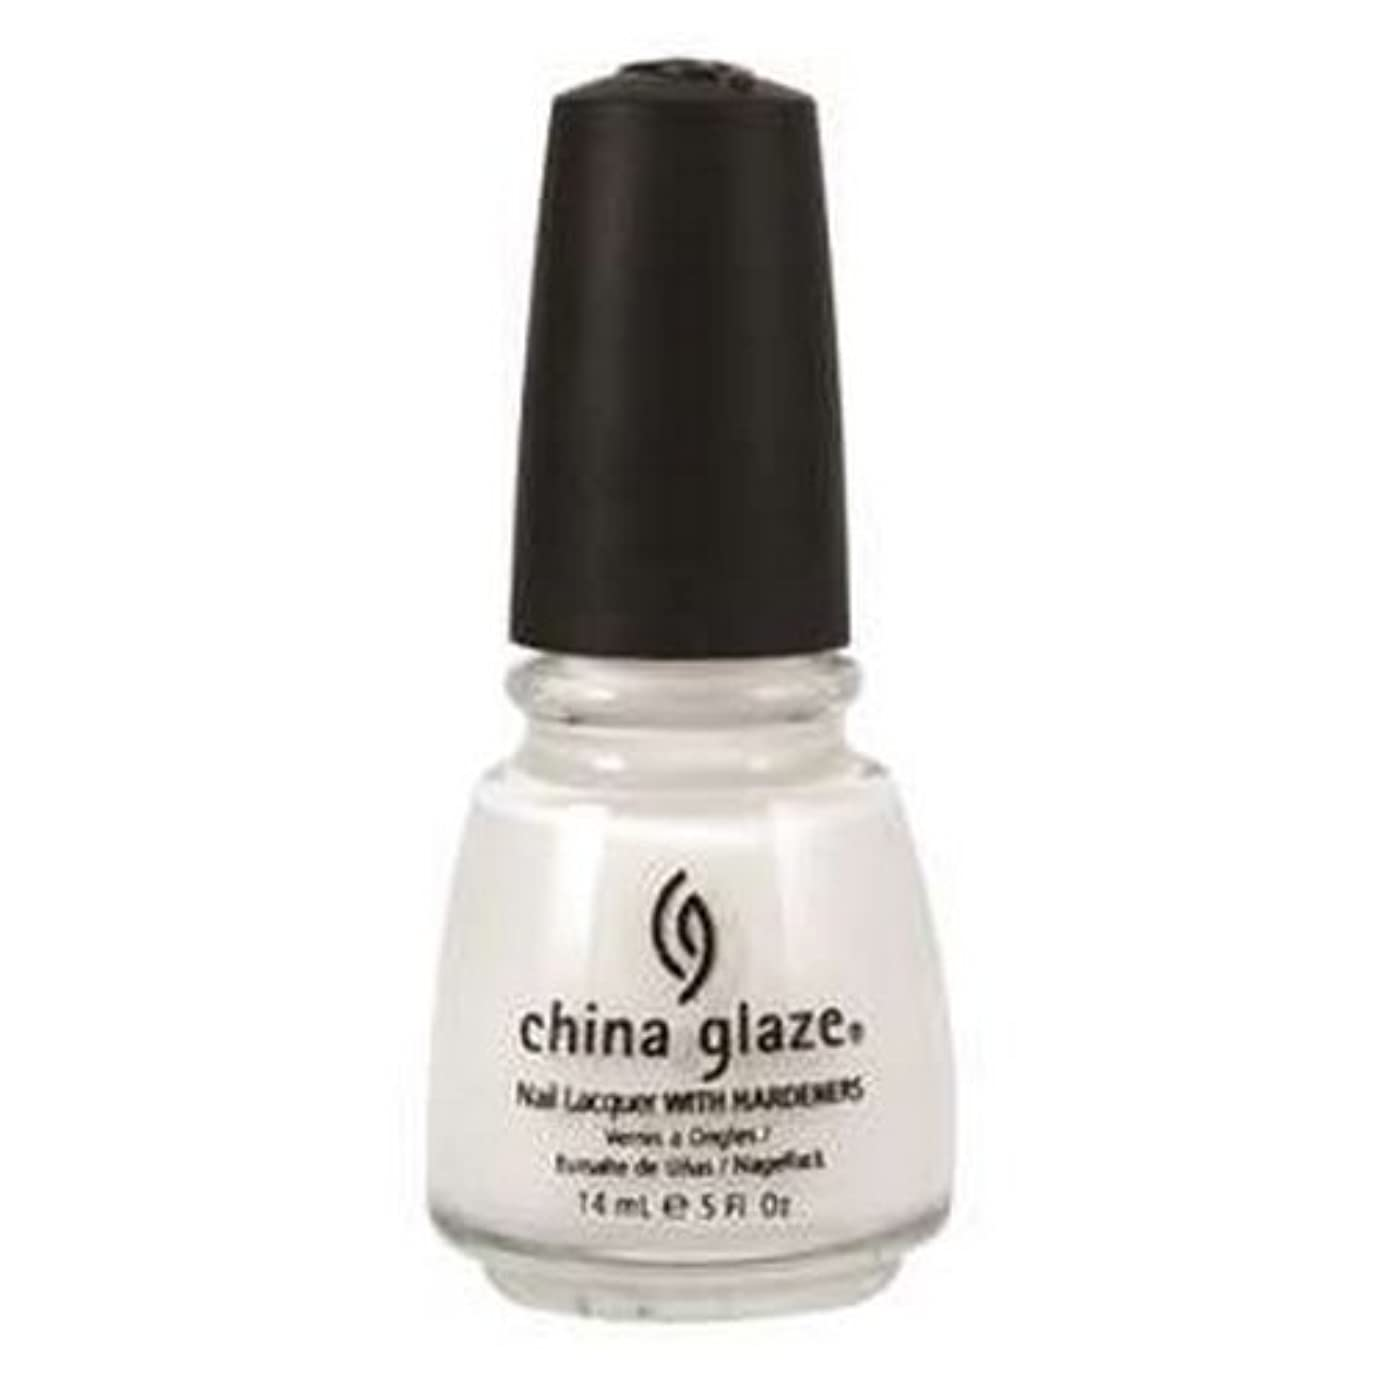 実験的愛情深い静的(3 Pack) CHINA GLAZE Nail Lacquer with Nail Hardner 2 - Snow (並行輸入品)